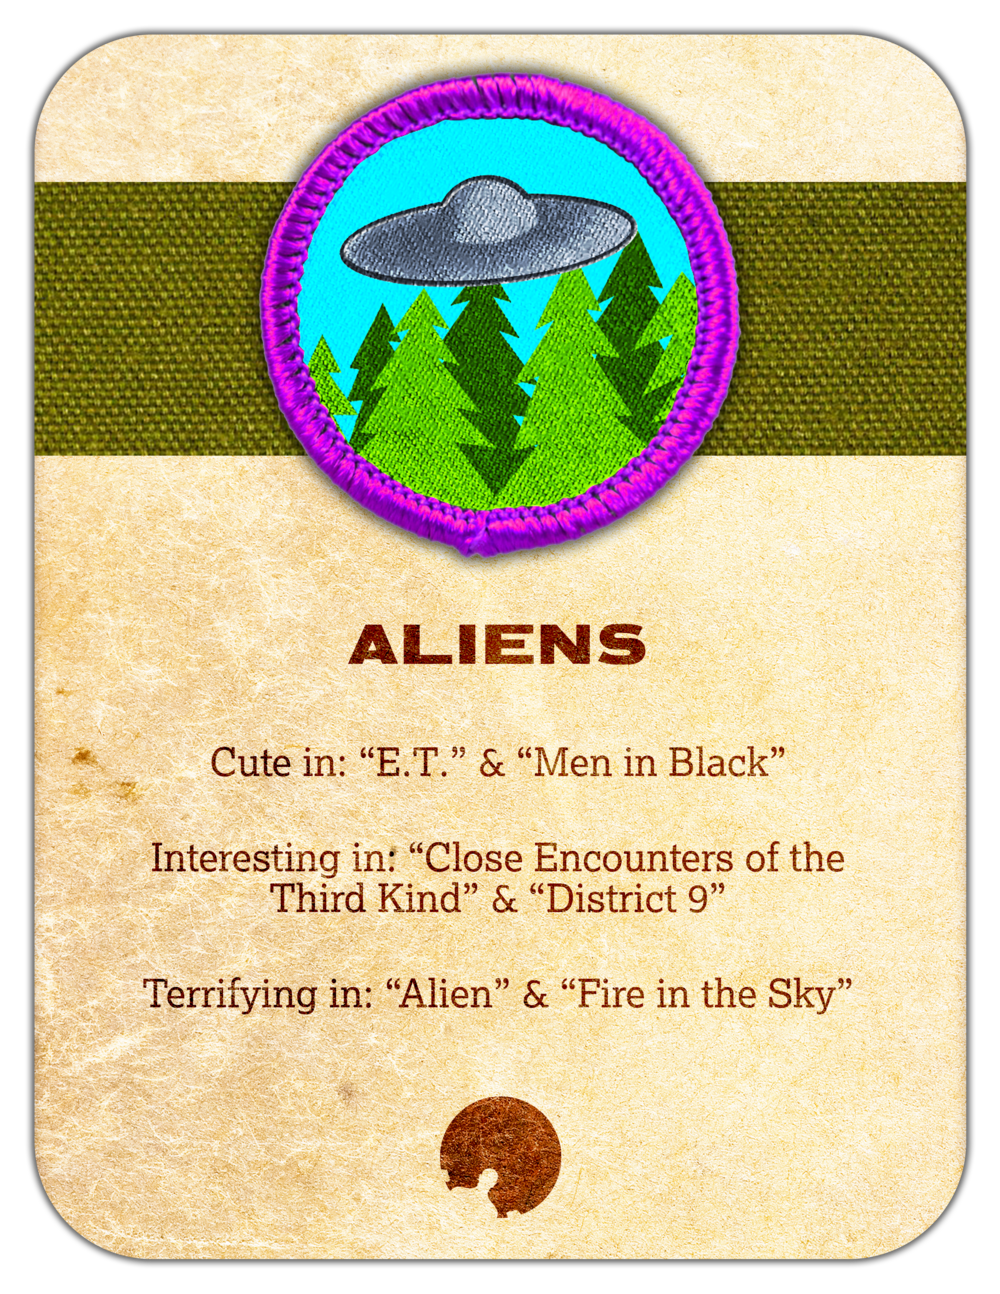 AliensCard.png